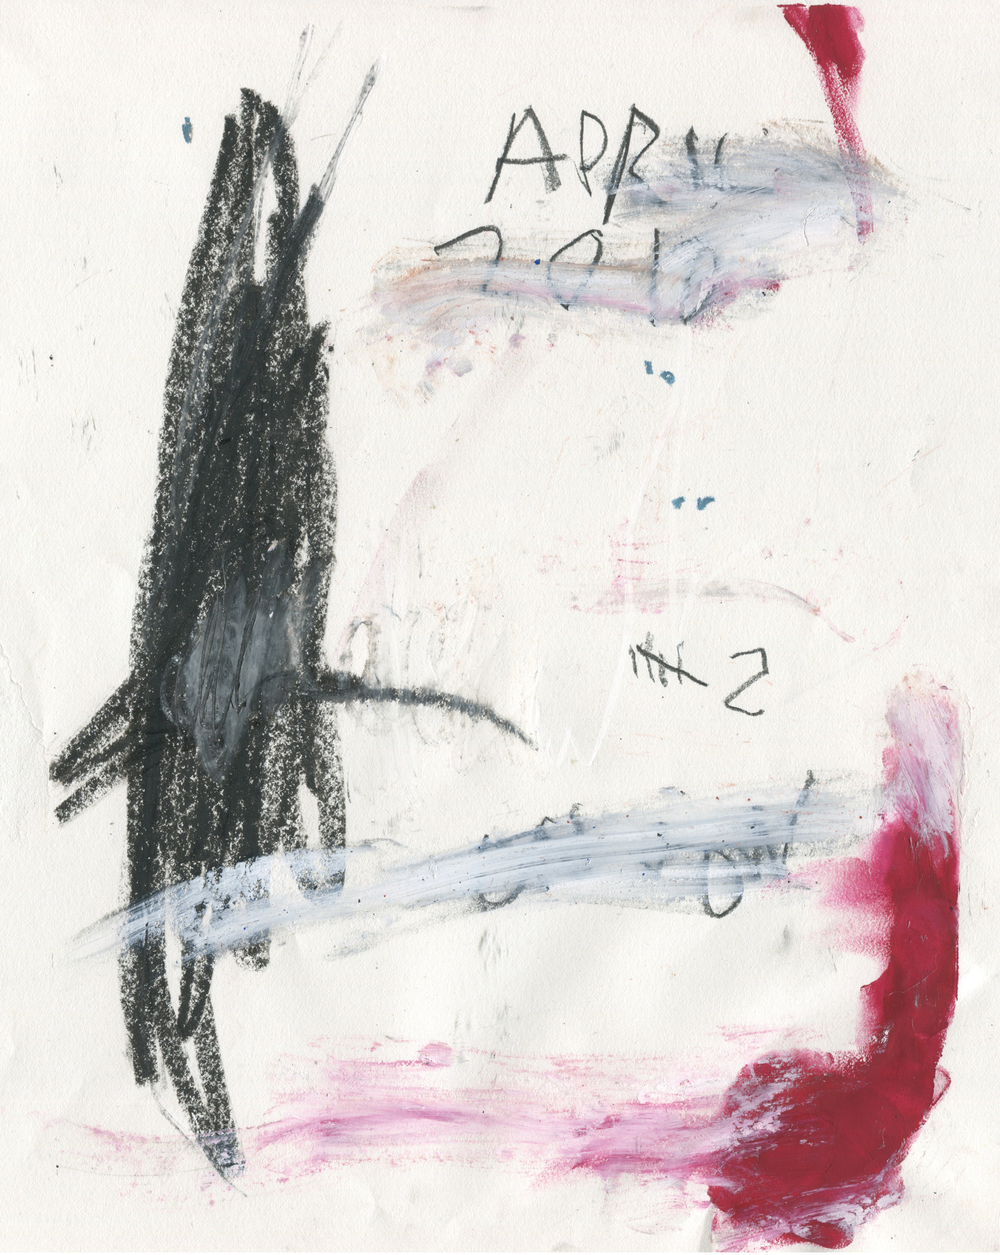 VI , 2016  14 x 11 inches  Crayon, Gouache, Oil Stick, Crayon, Chalk Pastel, and Graphite on Paper  Private Collection